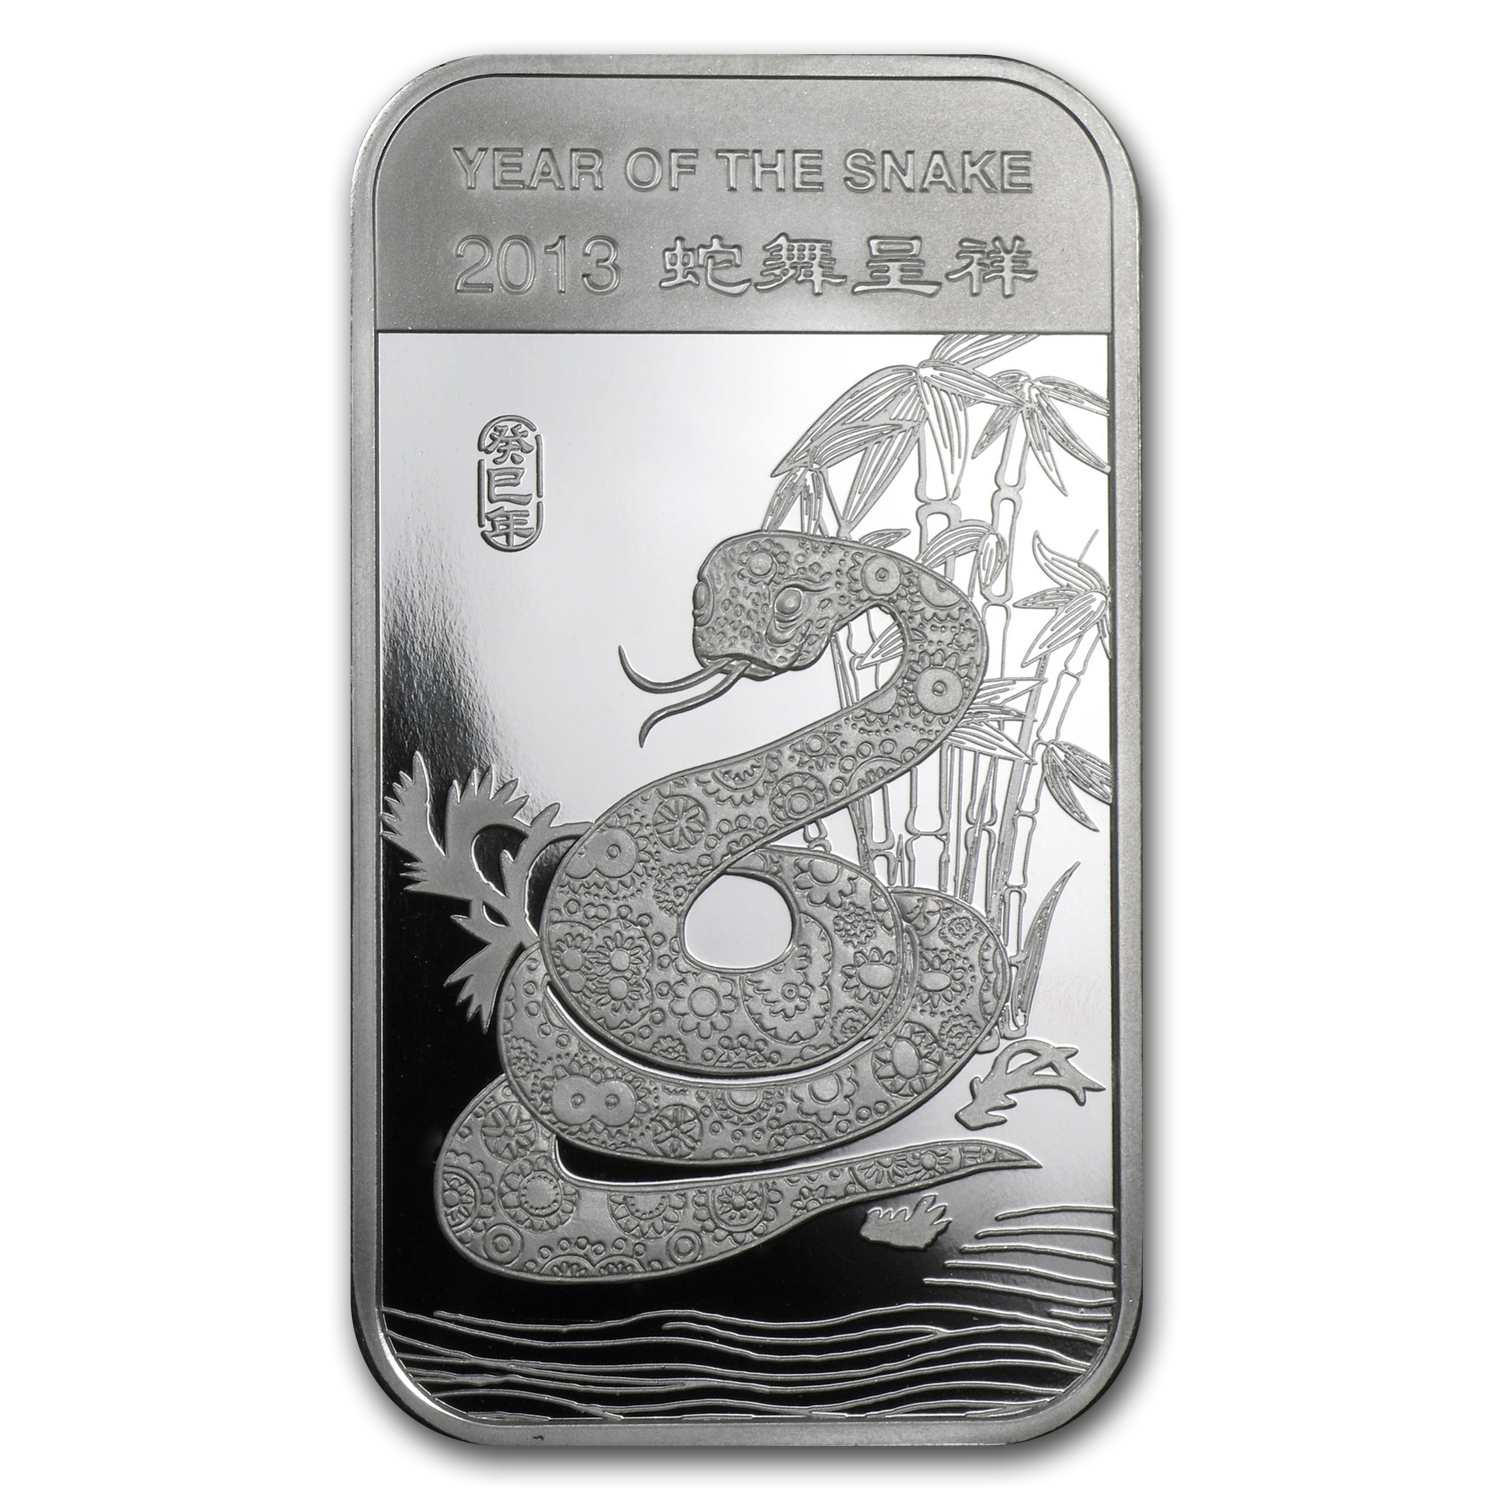 1 oz Silver Bars - Year of the Snake